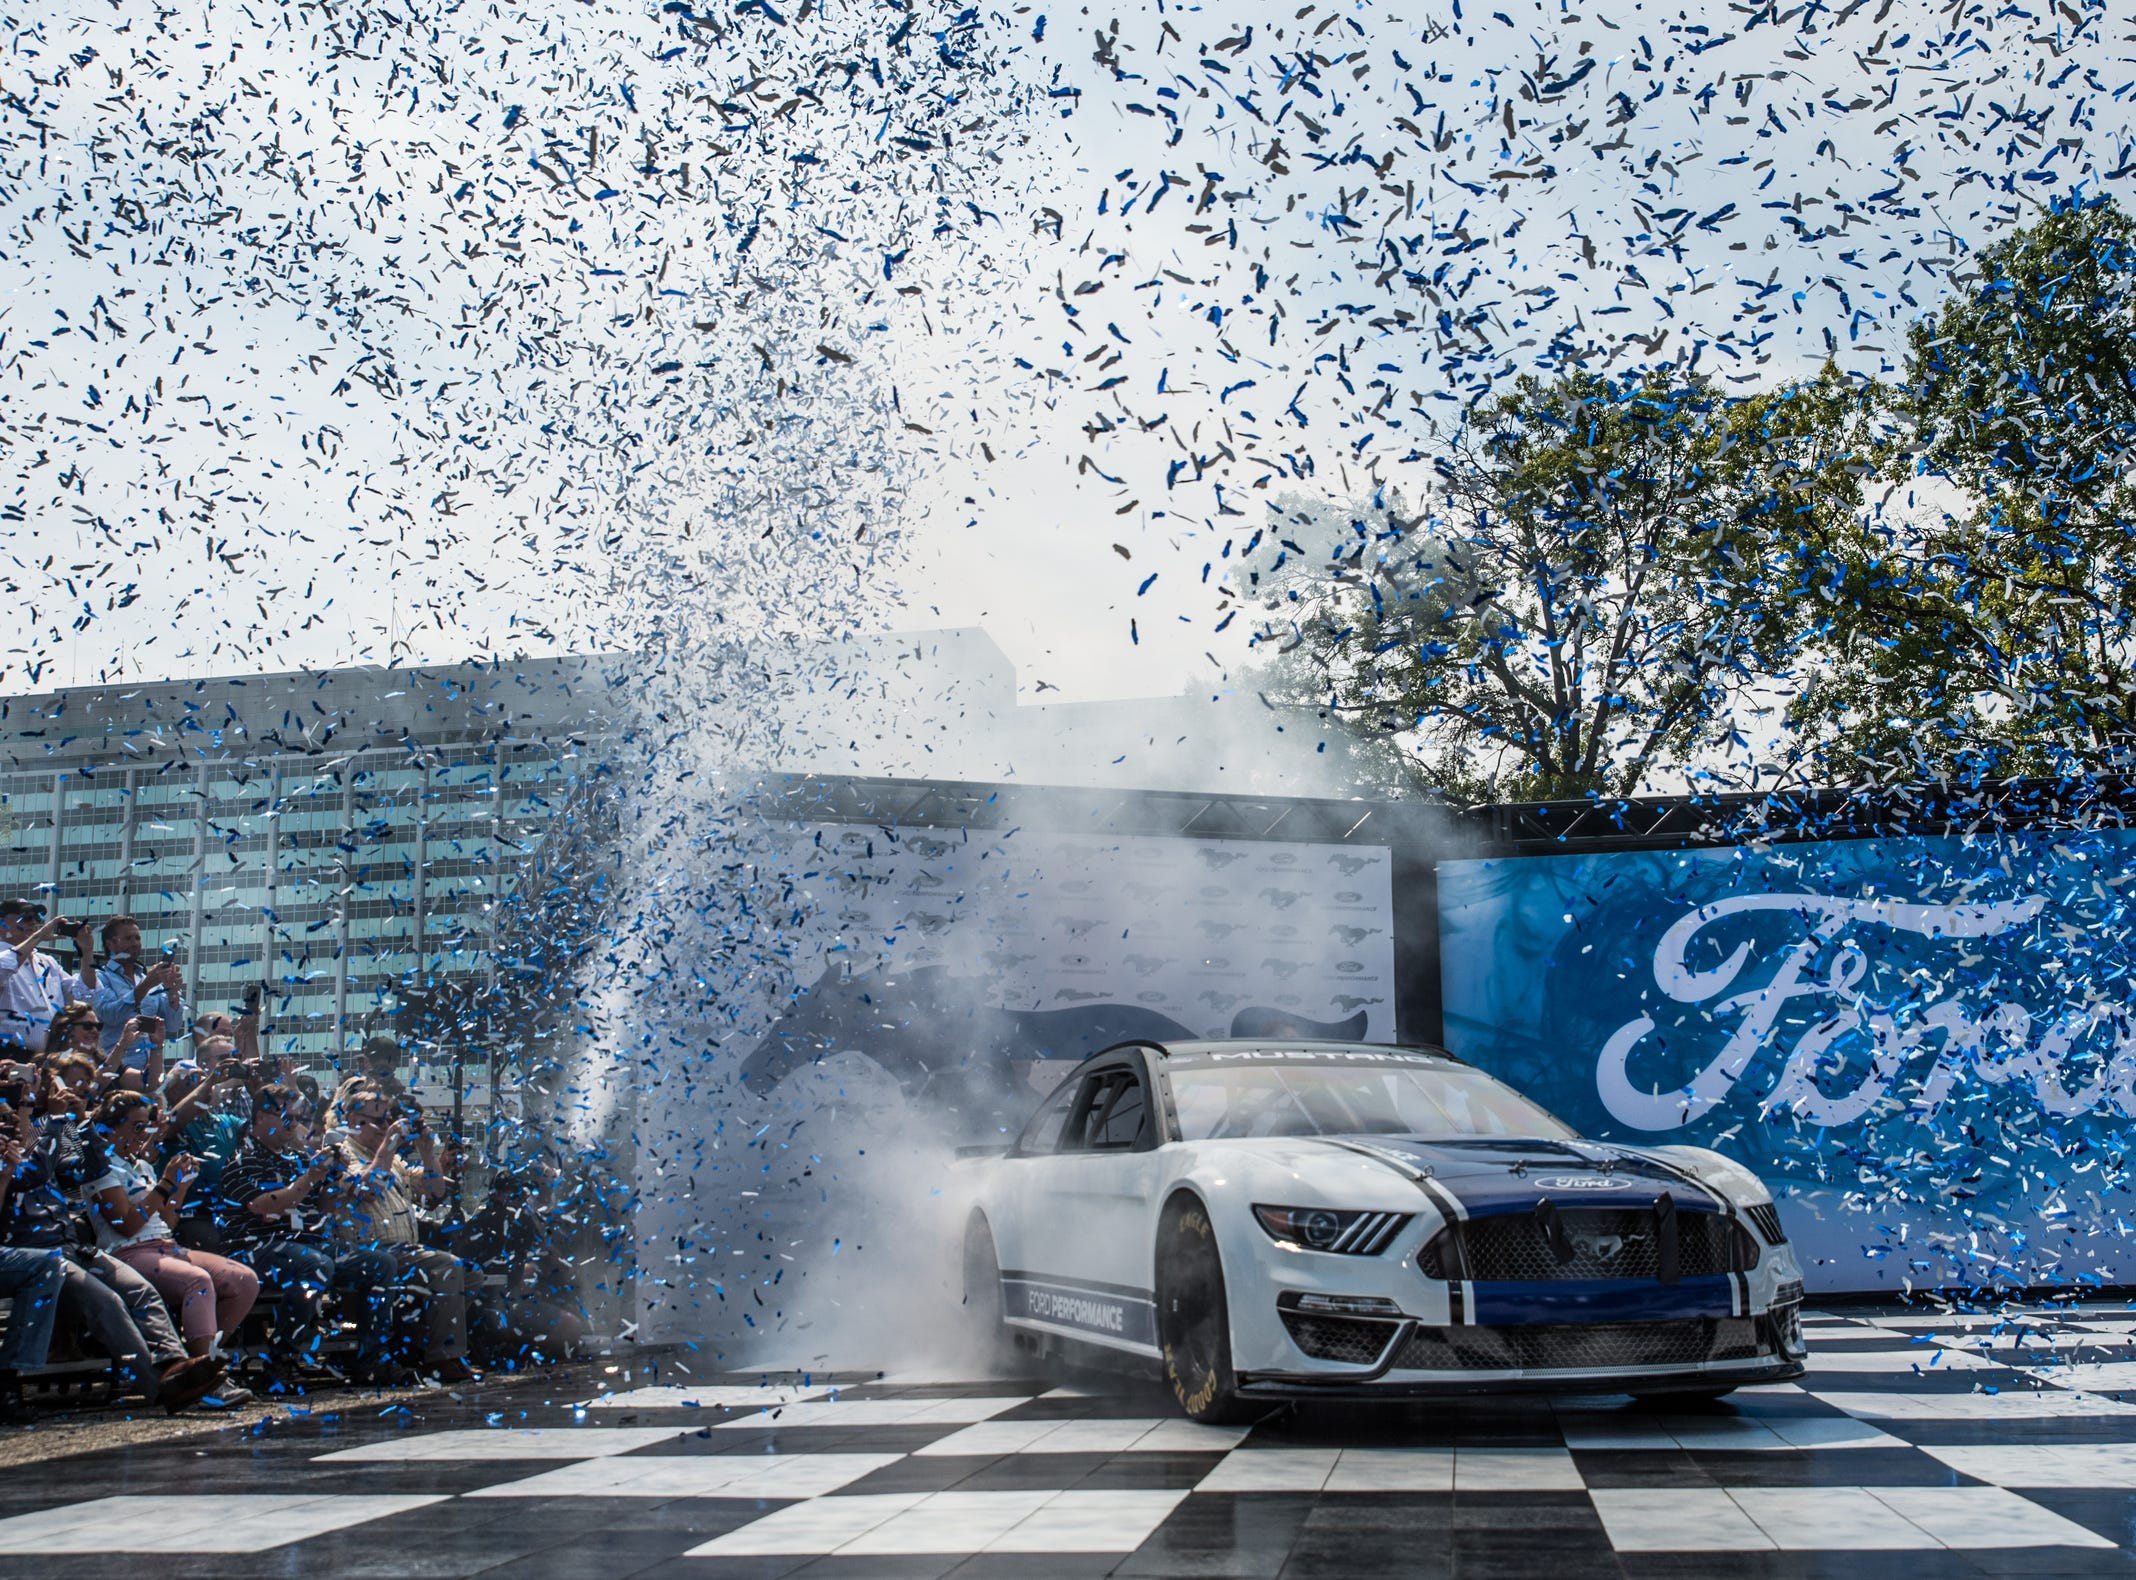 The new Ford Mustang race car is unveiled at Ford Motor Co.'s World Headquarters in Dearborn on Aug. 9, 2018. The car will debut at Daytona in Feb. 2019.